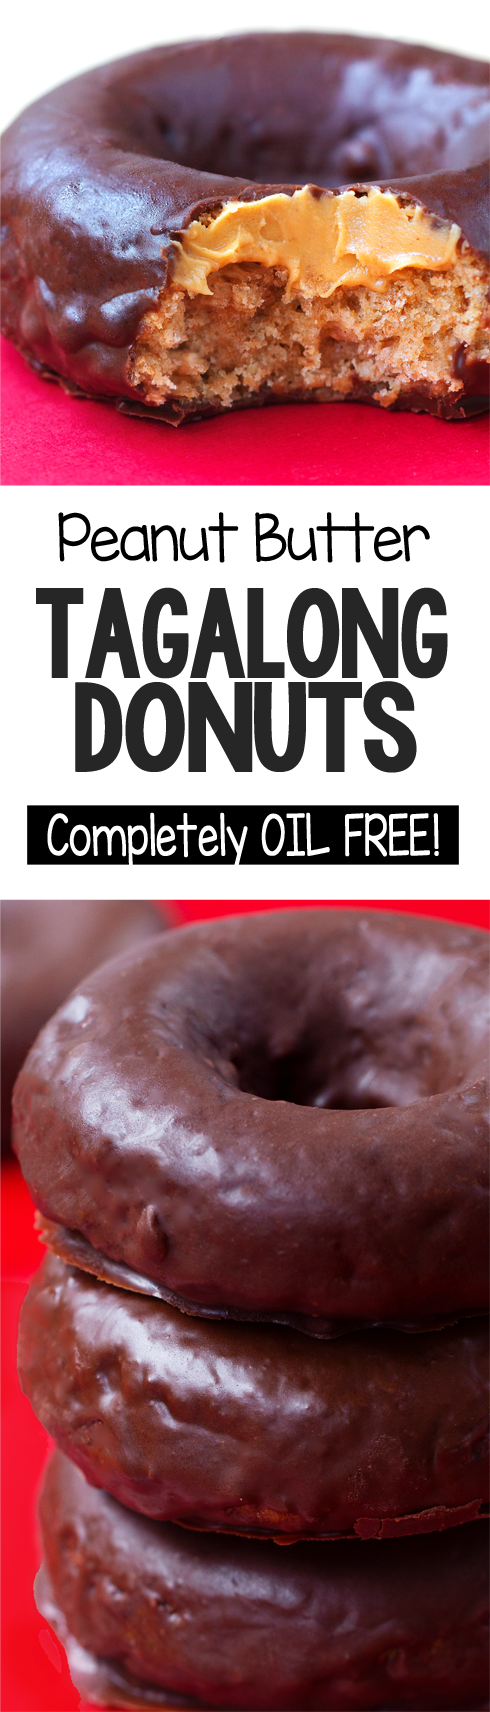 Super Healthy Peanut Butter Tagalong Girl Scout Cookie Donuts